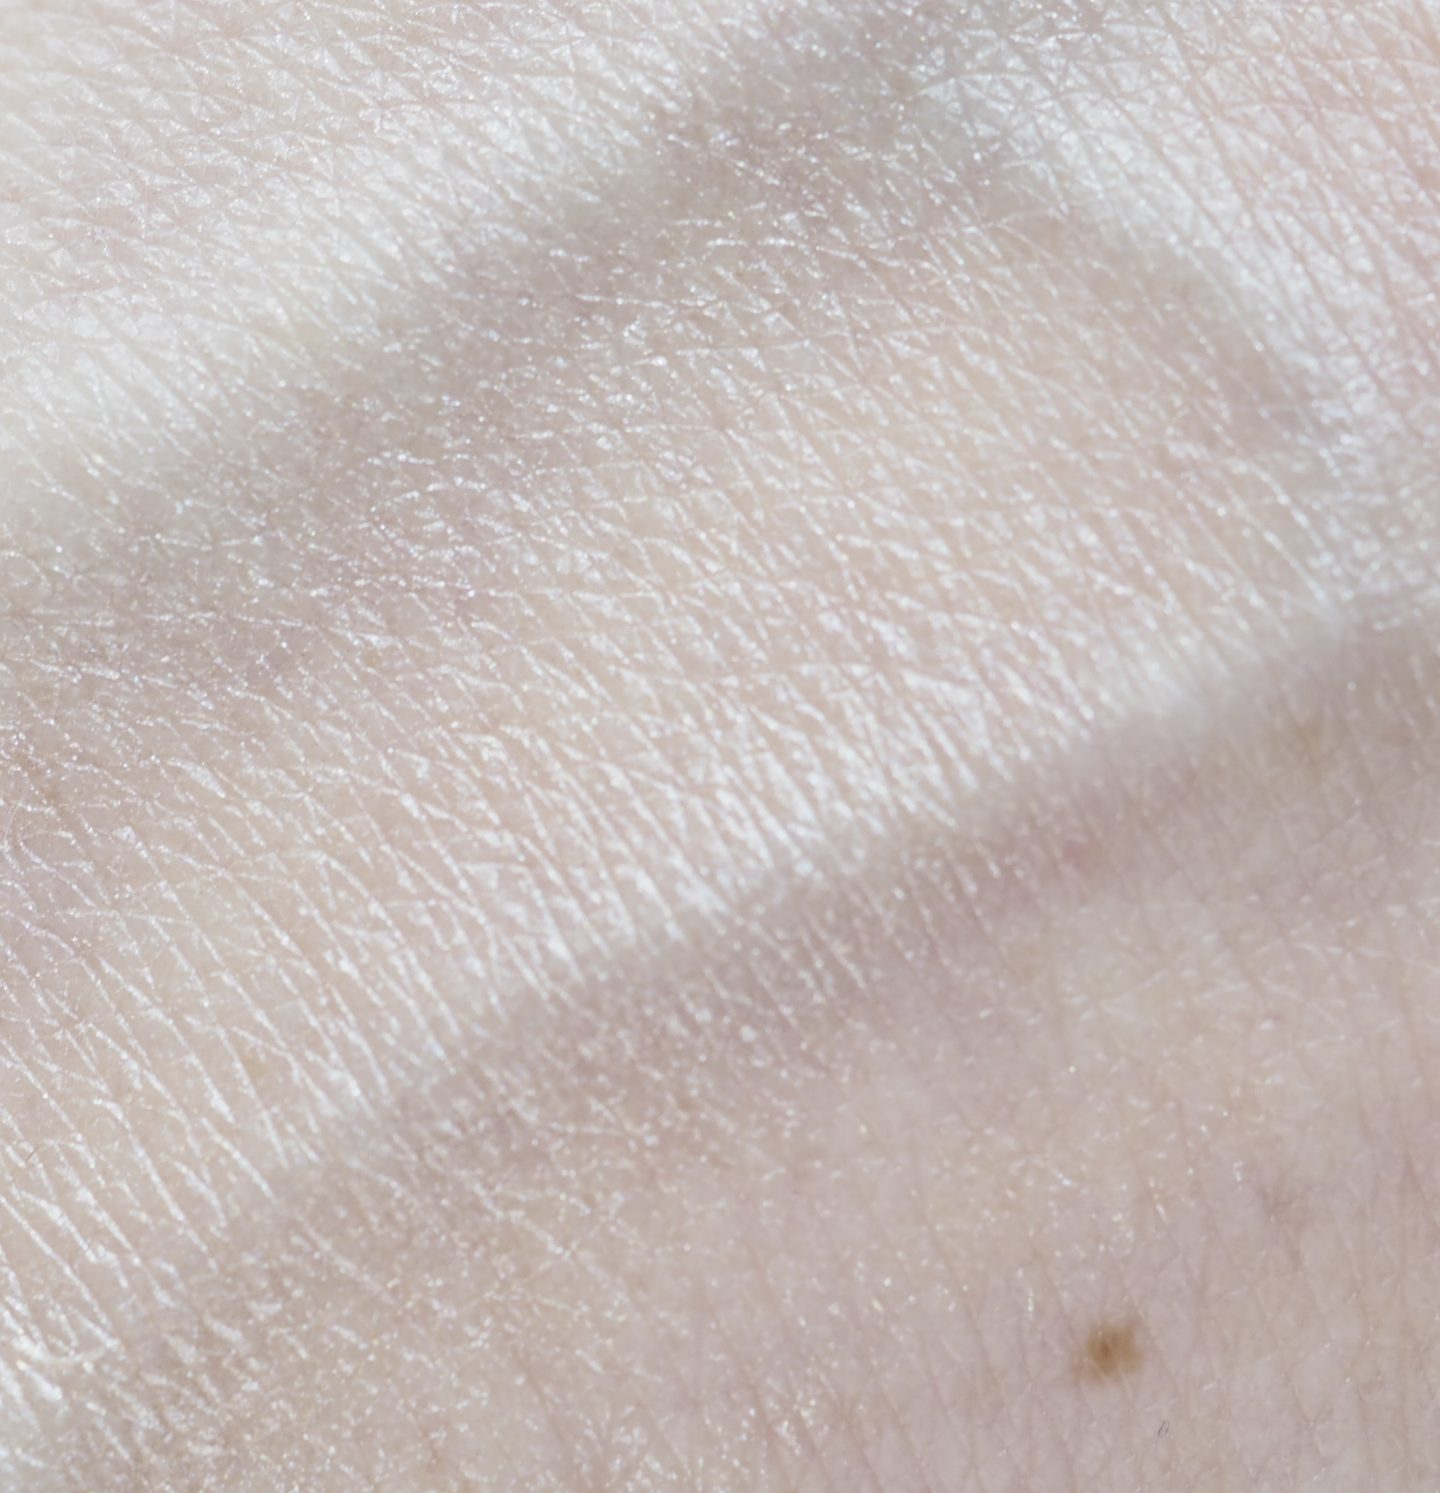 Swatch PurNo Filter Blurring Photography Primer Rose Gold Glow